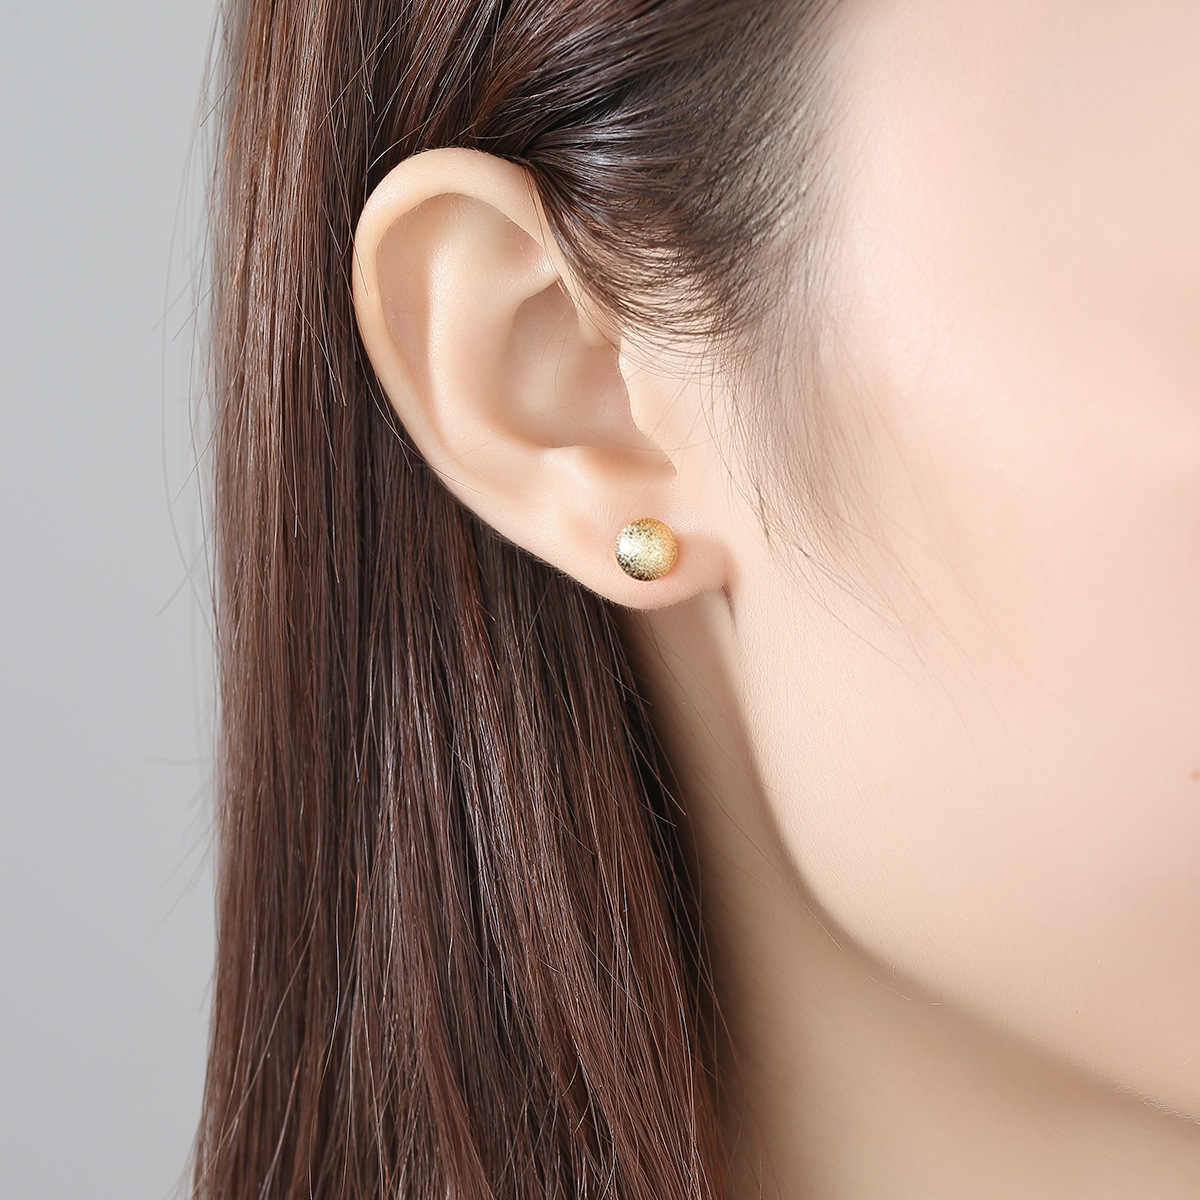 Simple Matte Gold Small Metal Ball Stud